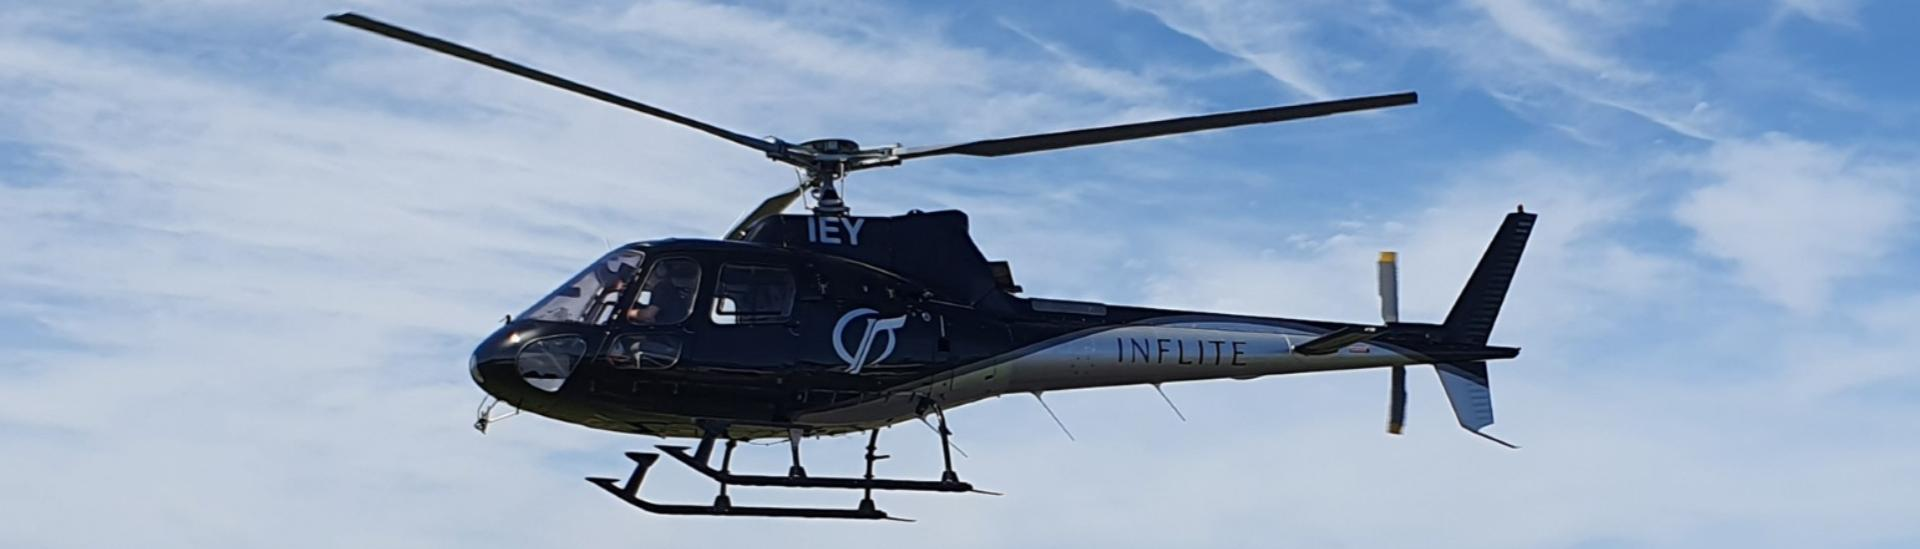 Airwork Helicopters for sale and lease.  BK117, AS350, AS355